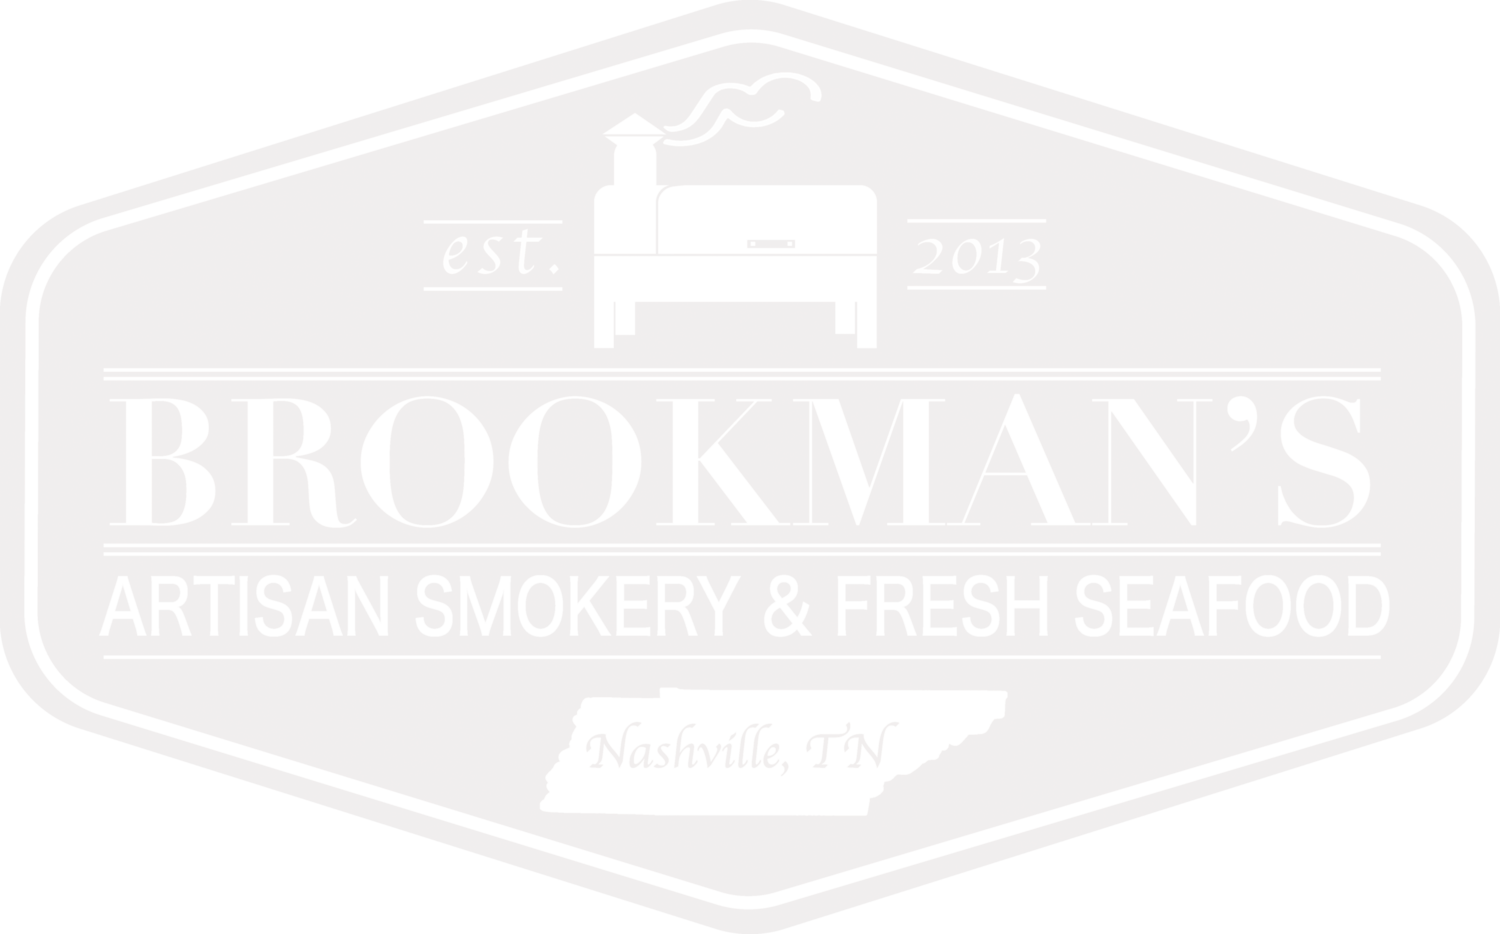 Brookman's Artisan Smokery and Fresh Seafood